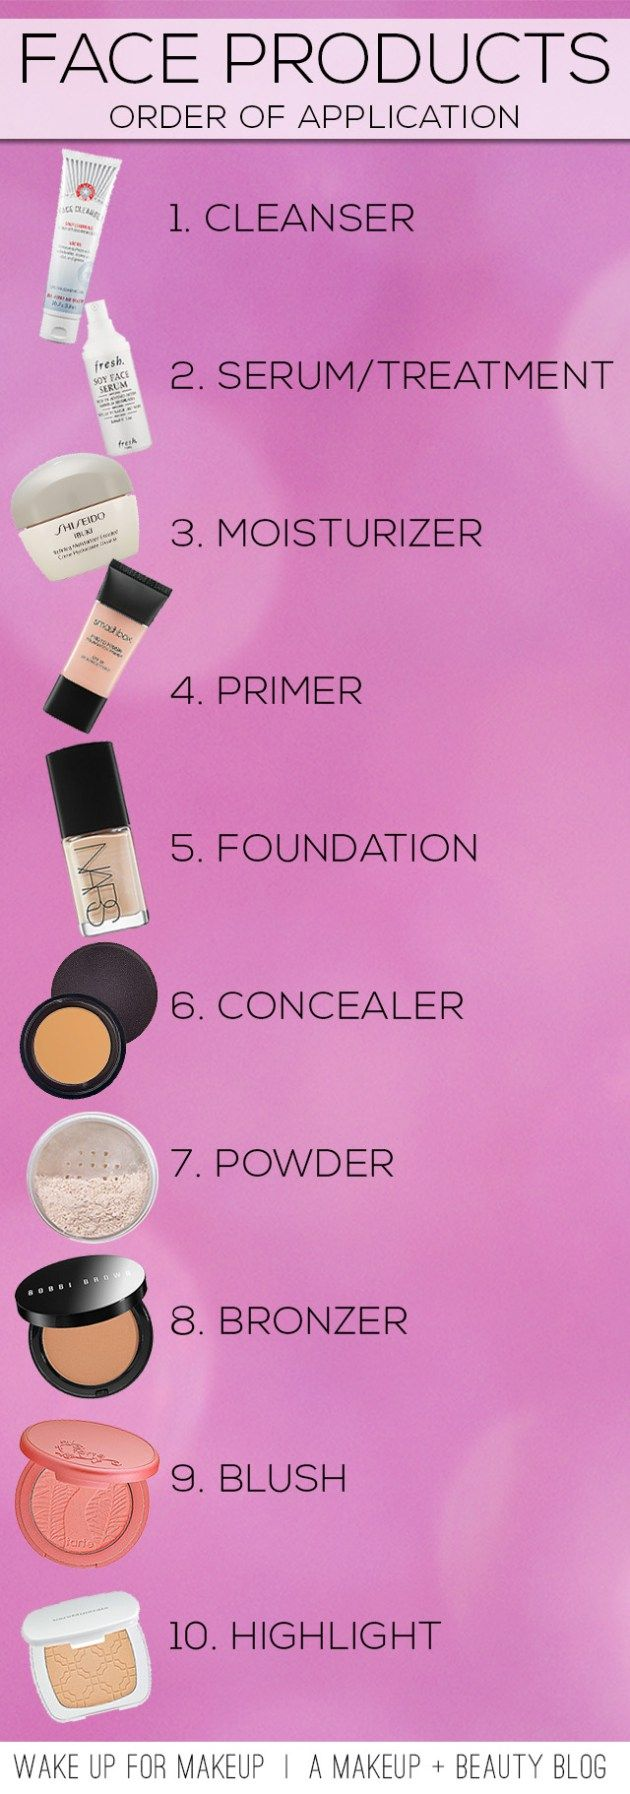 Order To Apply Face Products Face products, Beauty tips